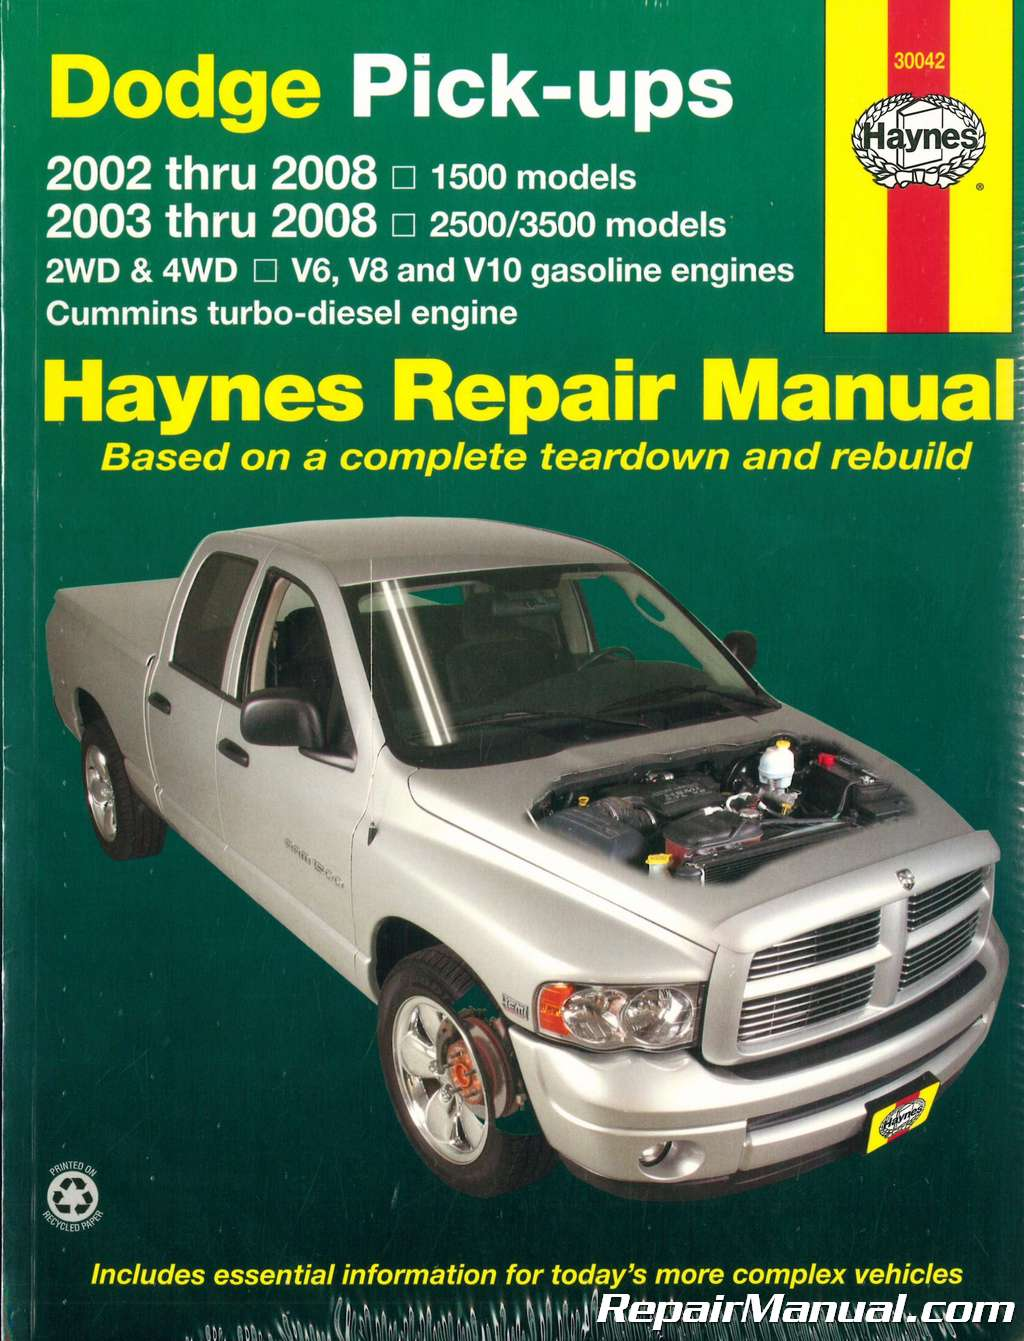 dodge ram repair manual 1500 2500 3500 pickup truck haynes 2002 2008 rh repairmanual com 2002 dodge ram 1500 repair manual pdf 2002 dodge ram 1500 repair manual download